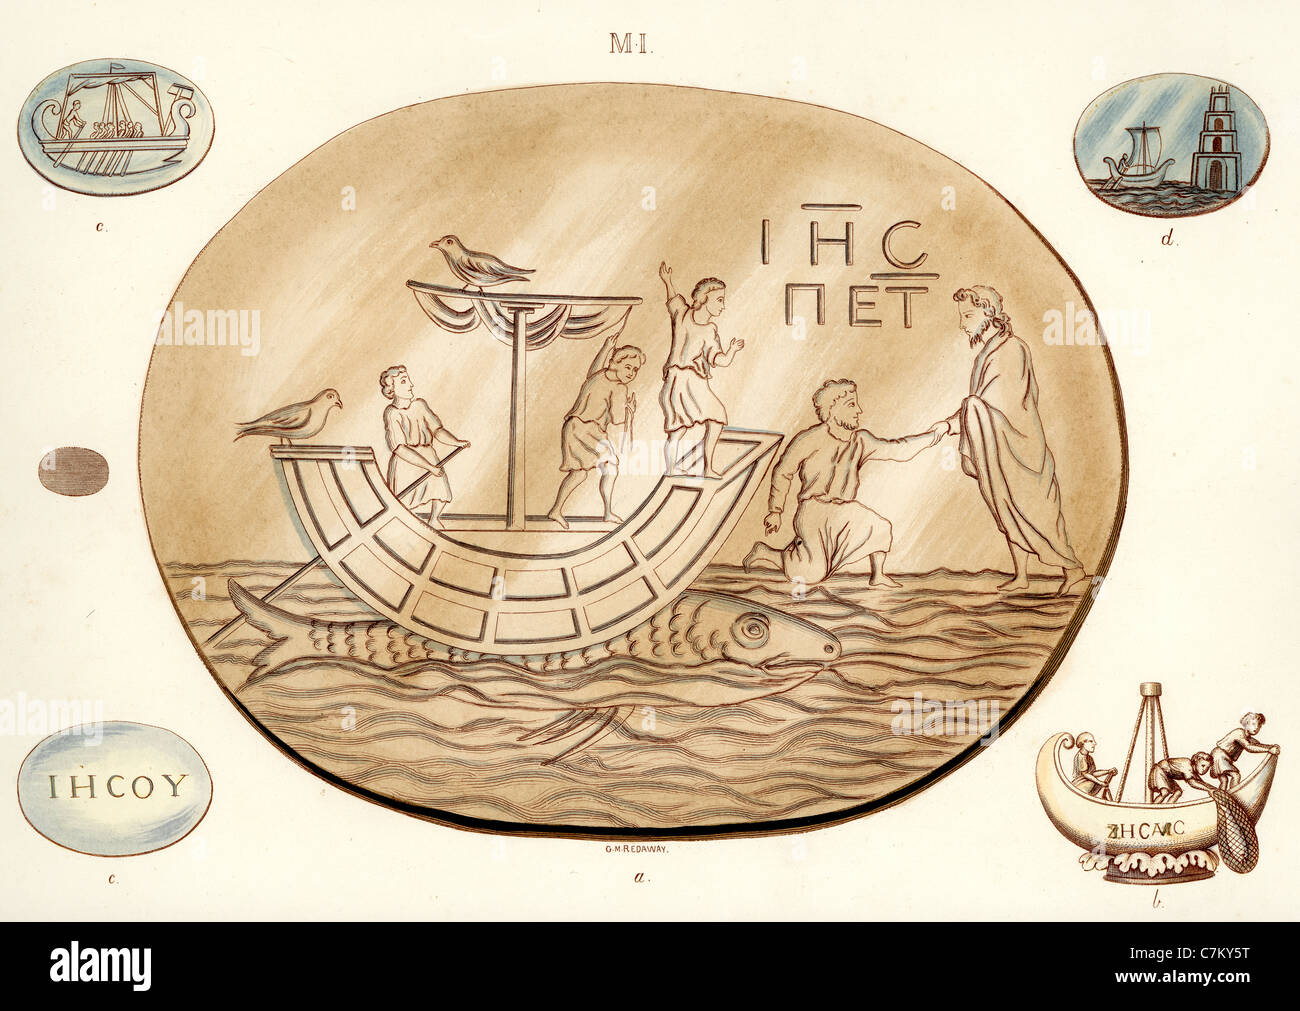 Early Christian Symbolism Illustration From A Seal Showing A Ship